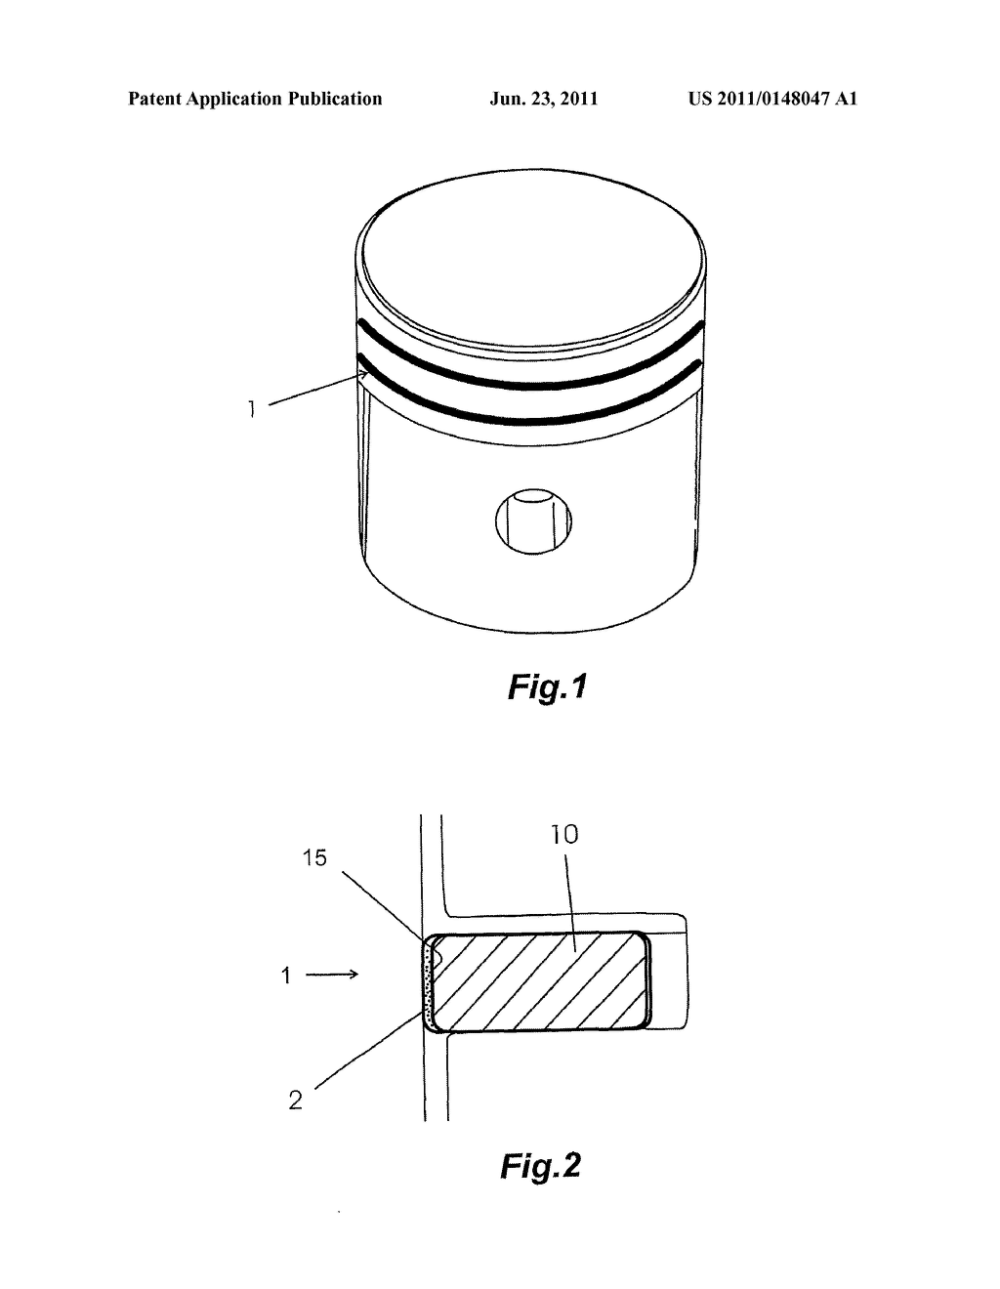 medium resolution of piston ring for internal combustion engine diagram schematic and image 02